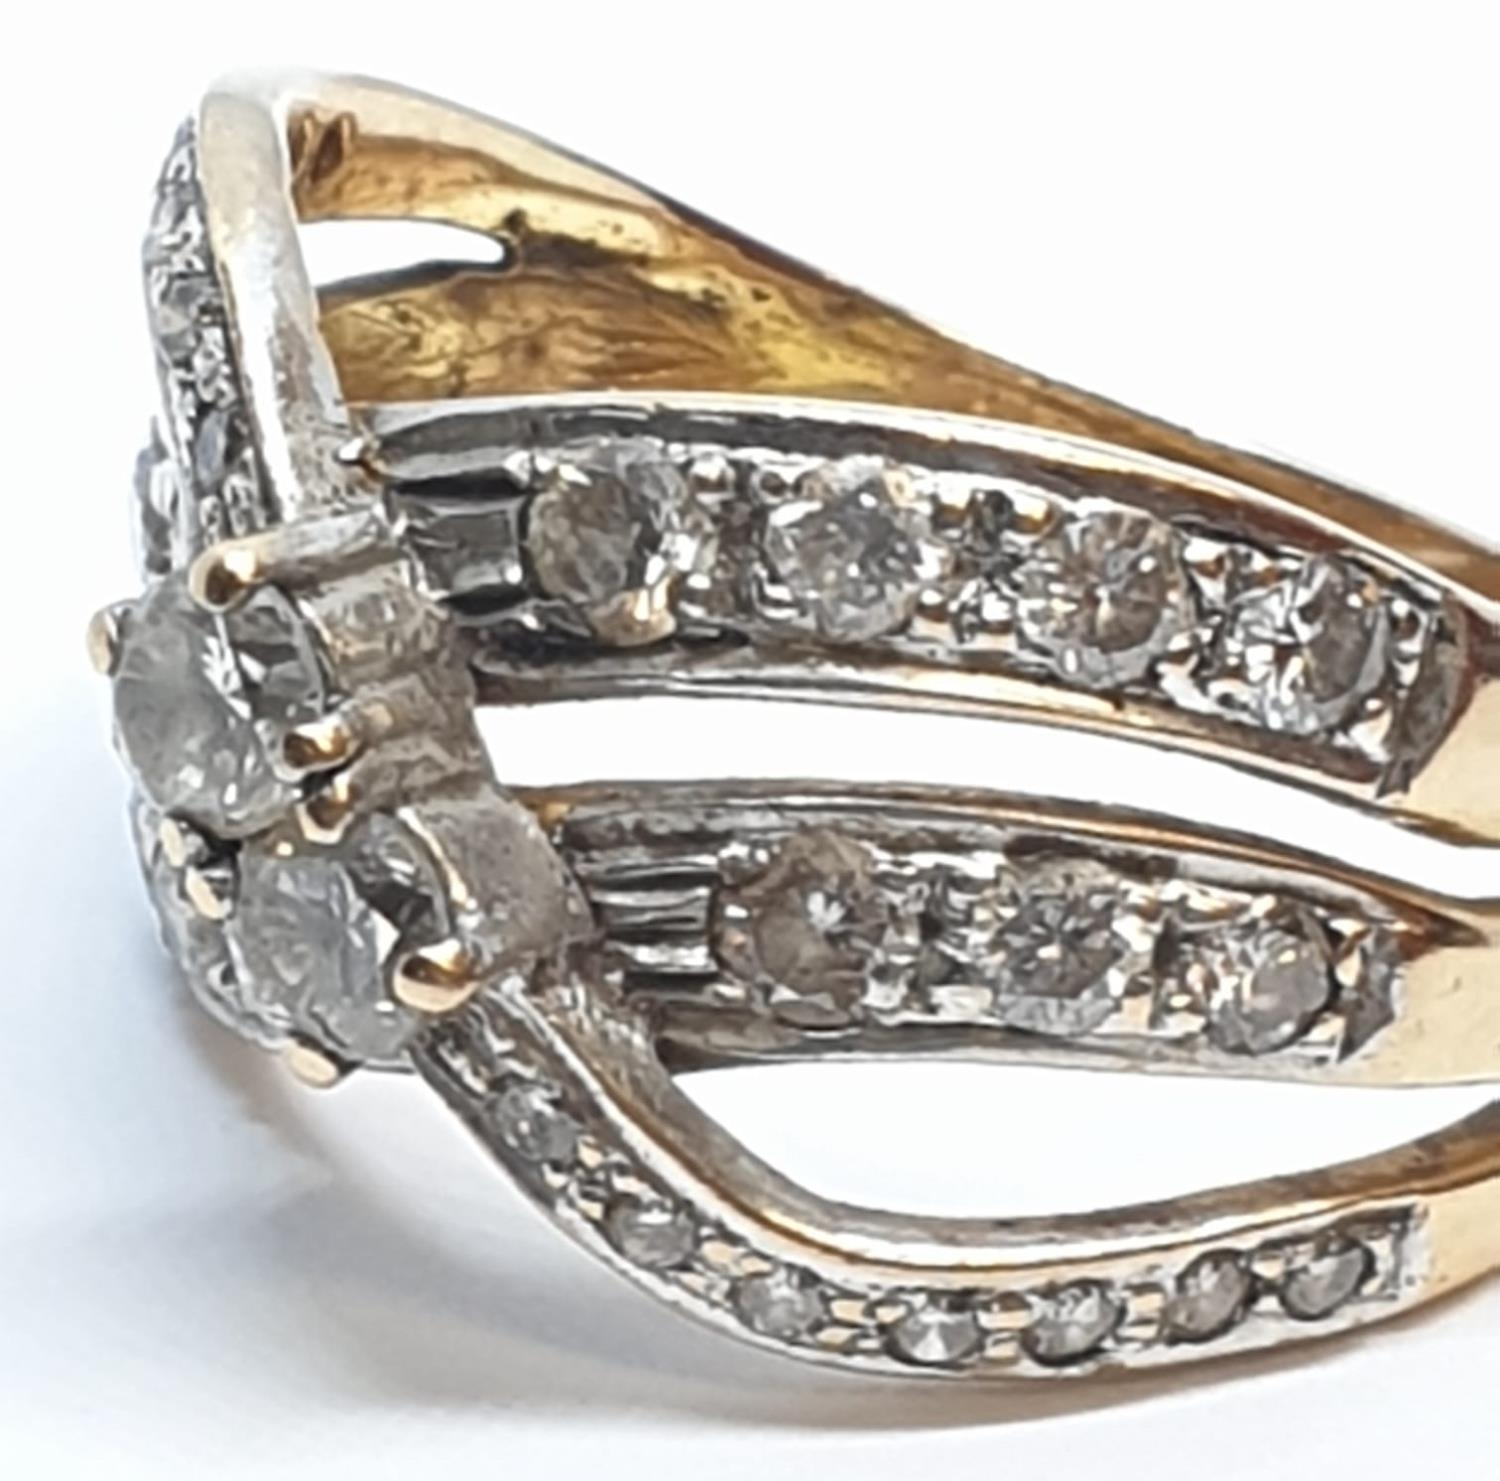 18ct Yellow gold diamond set fancy three row twist band ring. Weight 8.5g, Approx. 0.60ct of - Image 11 of 14